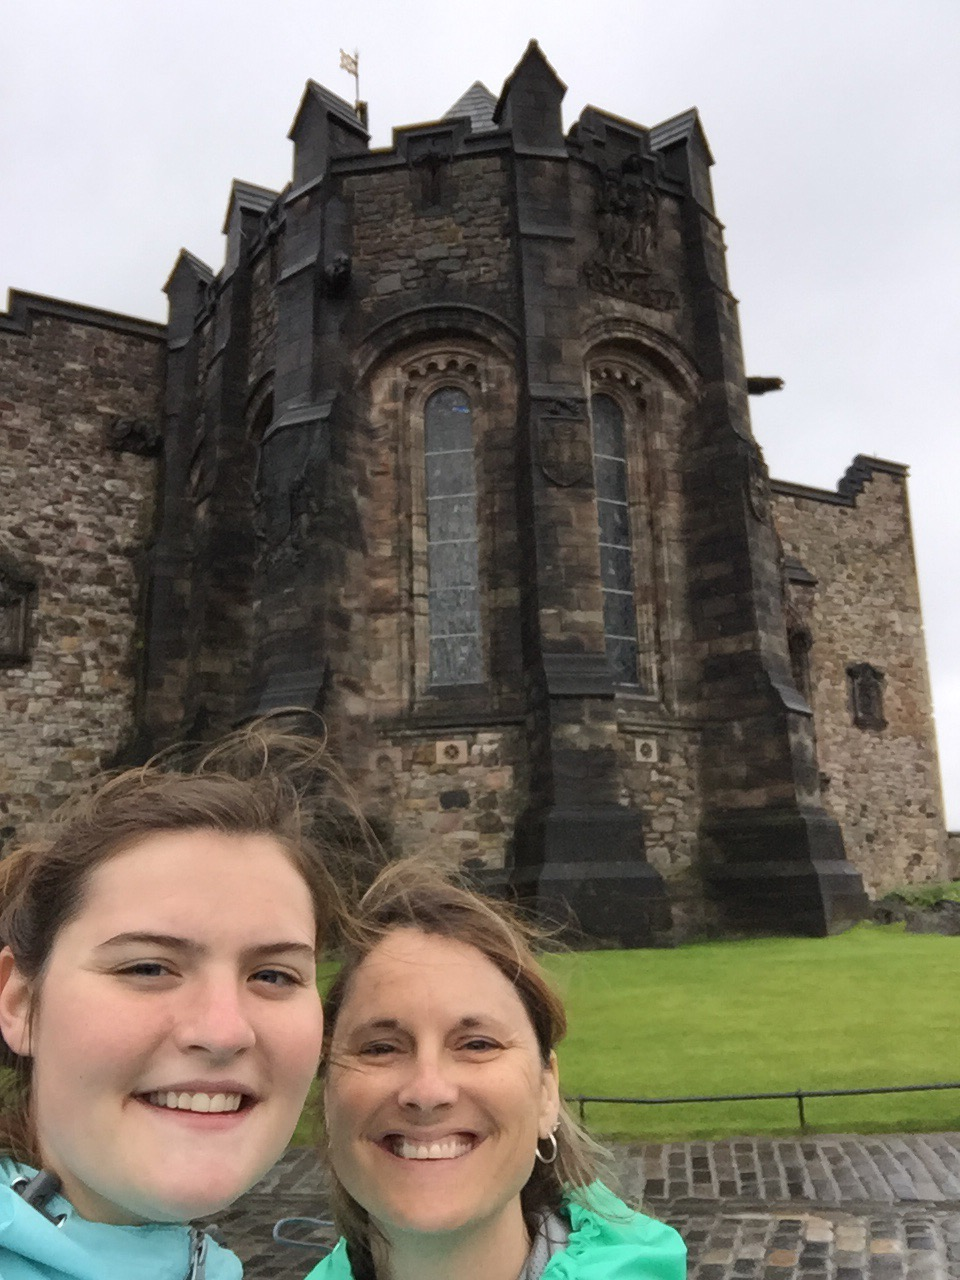 a place to call home by amy schisler reviews discussion a place called home book Upon arriving in Edinburgh, Katie and I went to lunch, and I told her as  much of the history of Scotland that I could, knowing just bits of the long  and ...